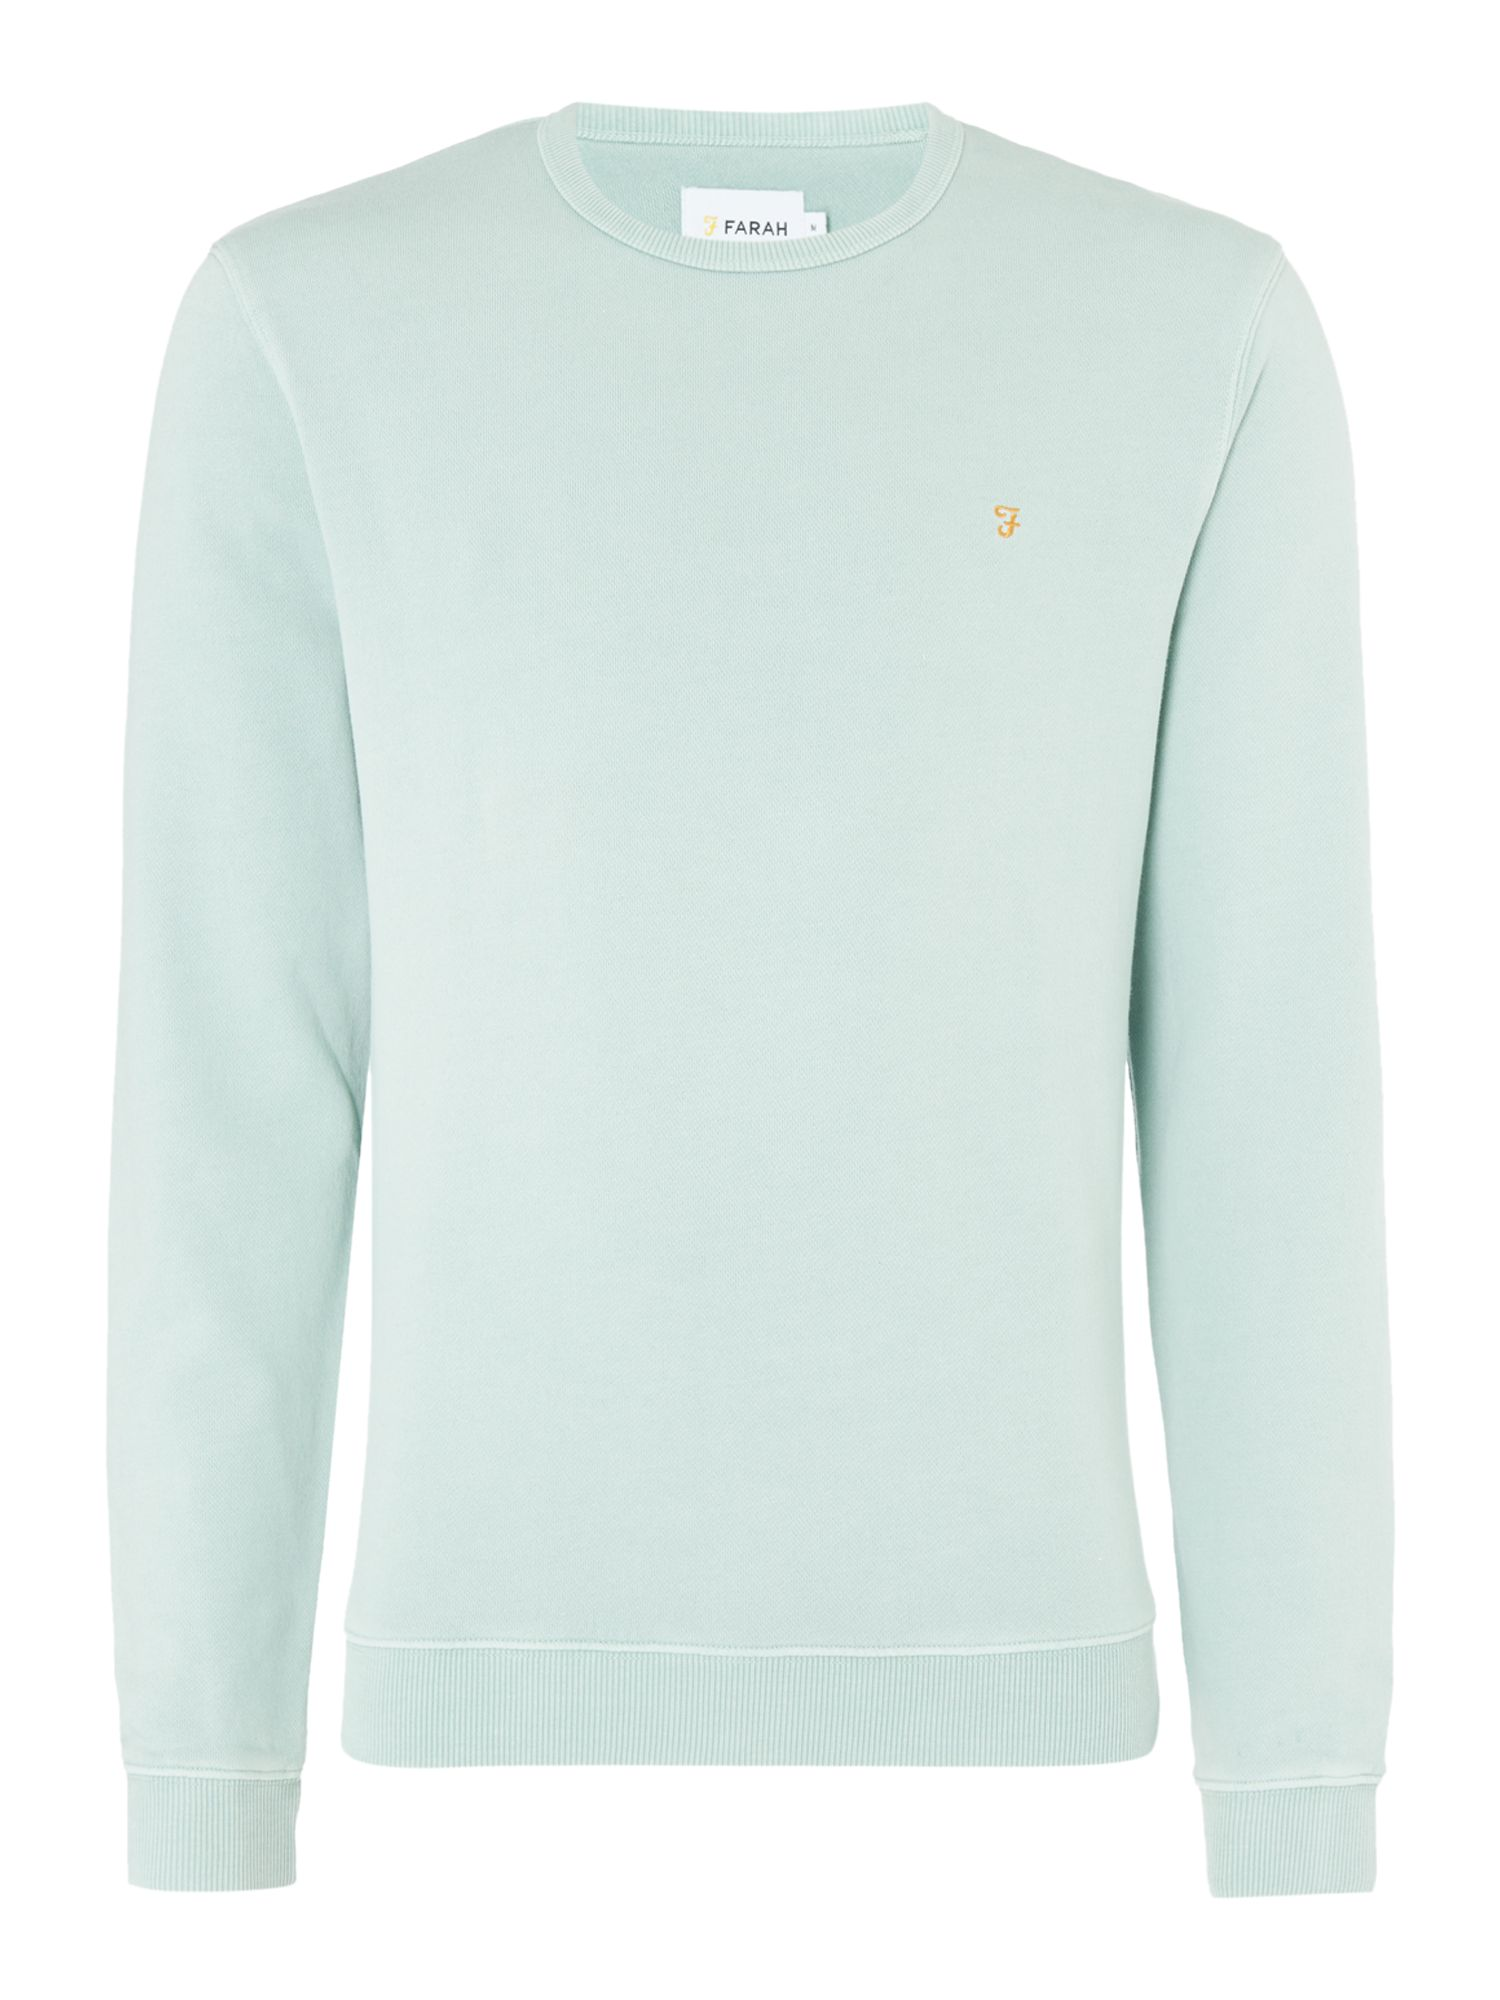 Men's Farah Pickwell Slim Fit Sweatshirt, Mint